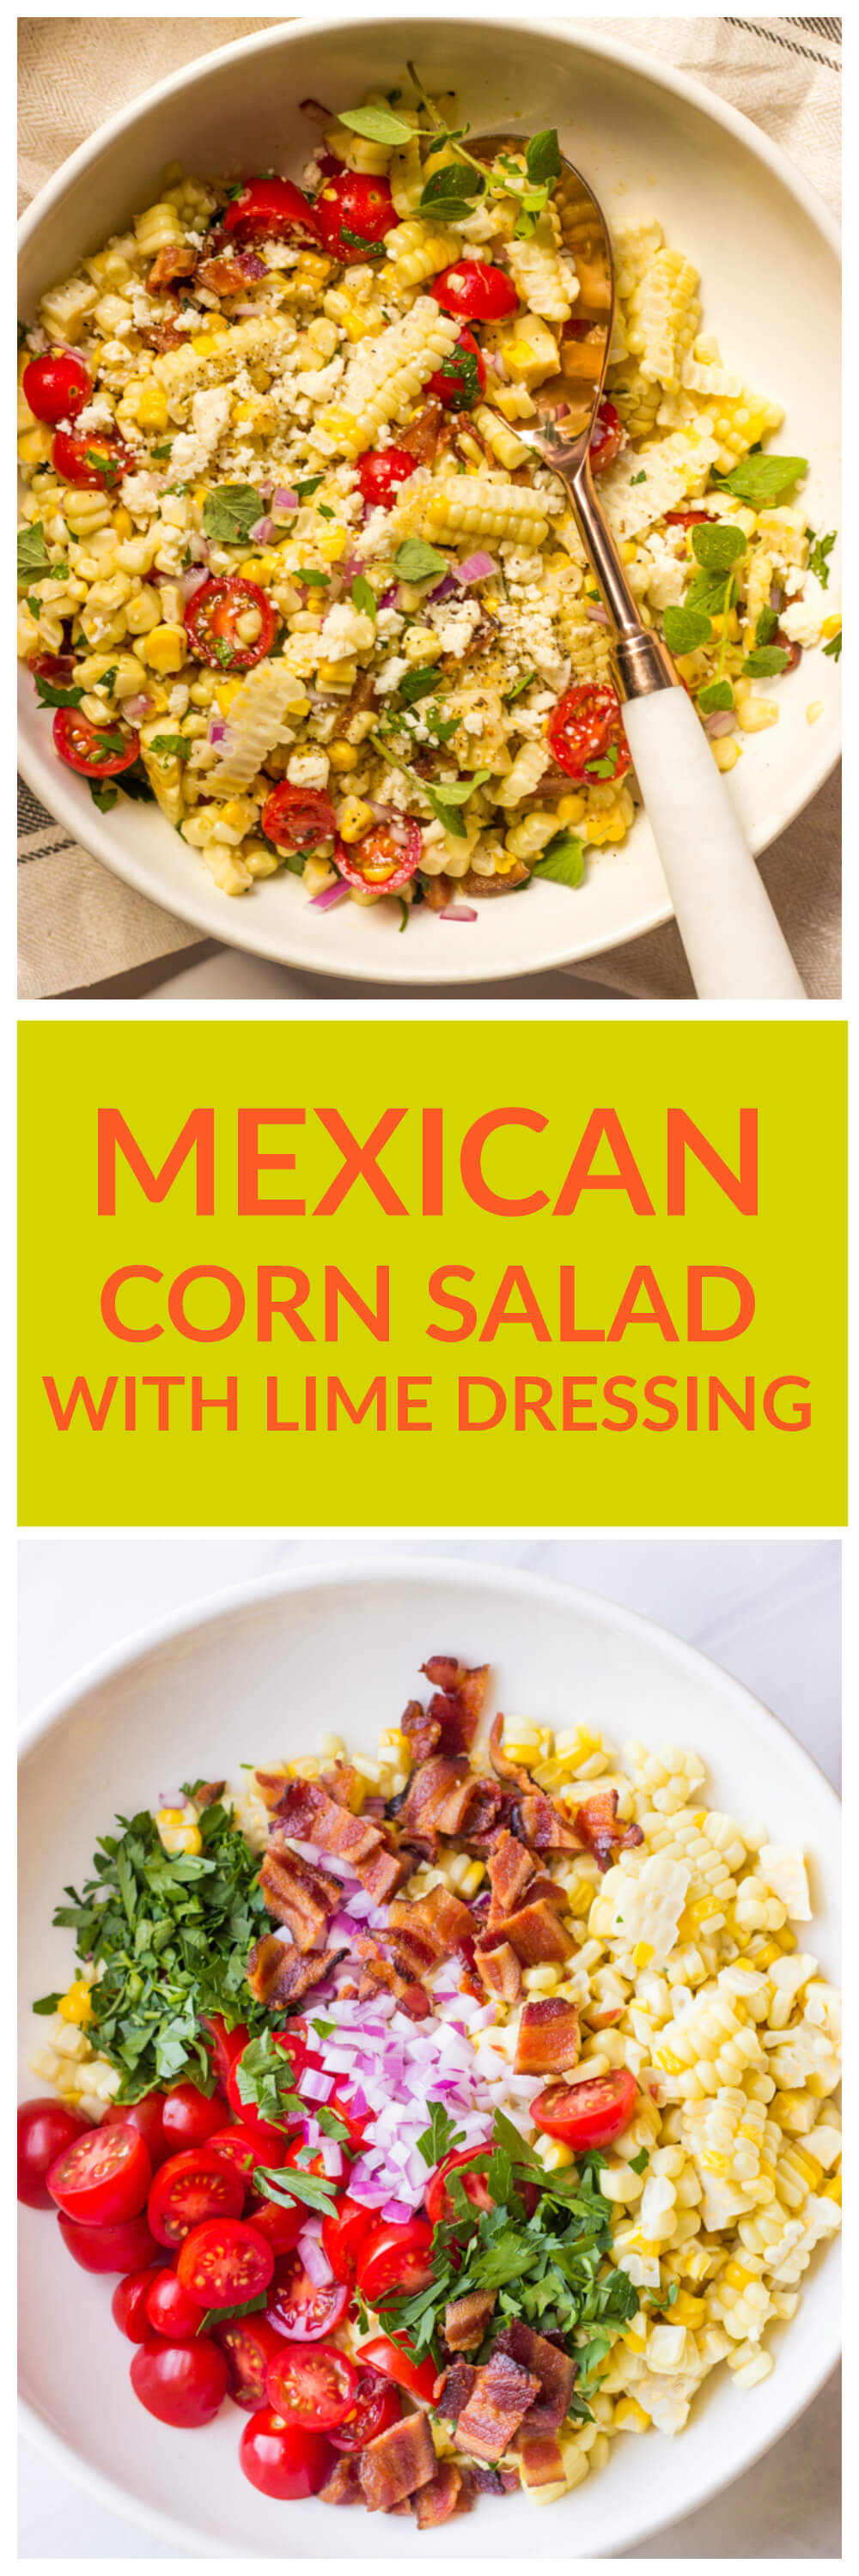 Mexican Corn Salad with Lime Dressing